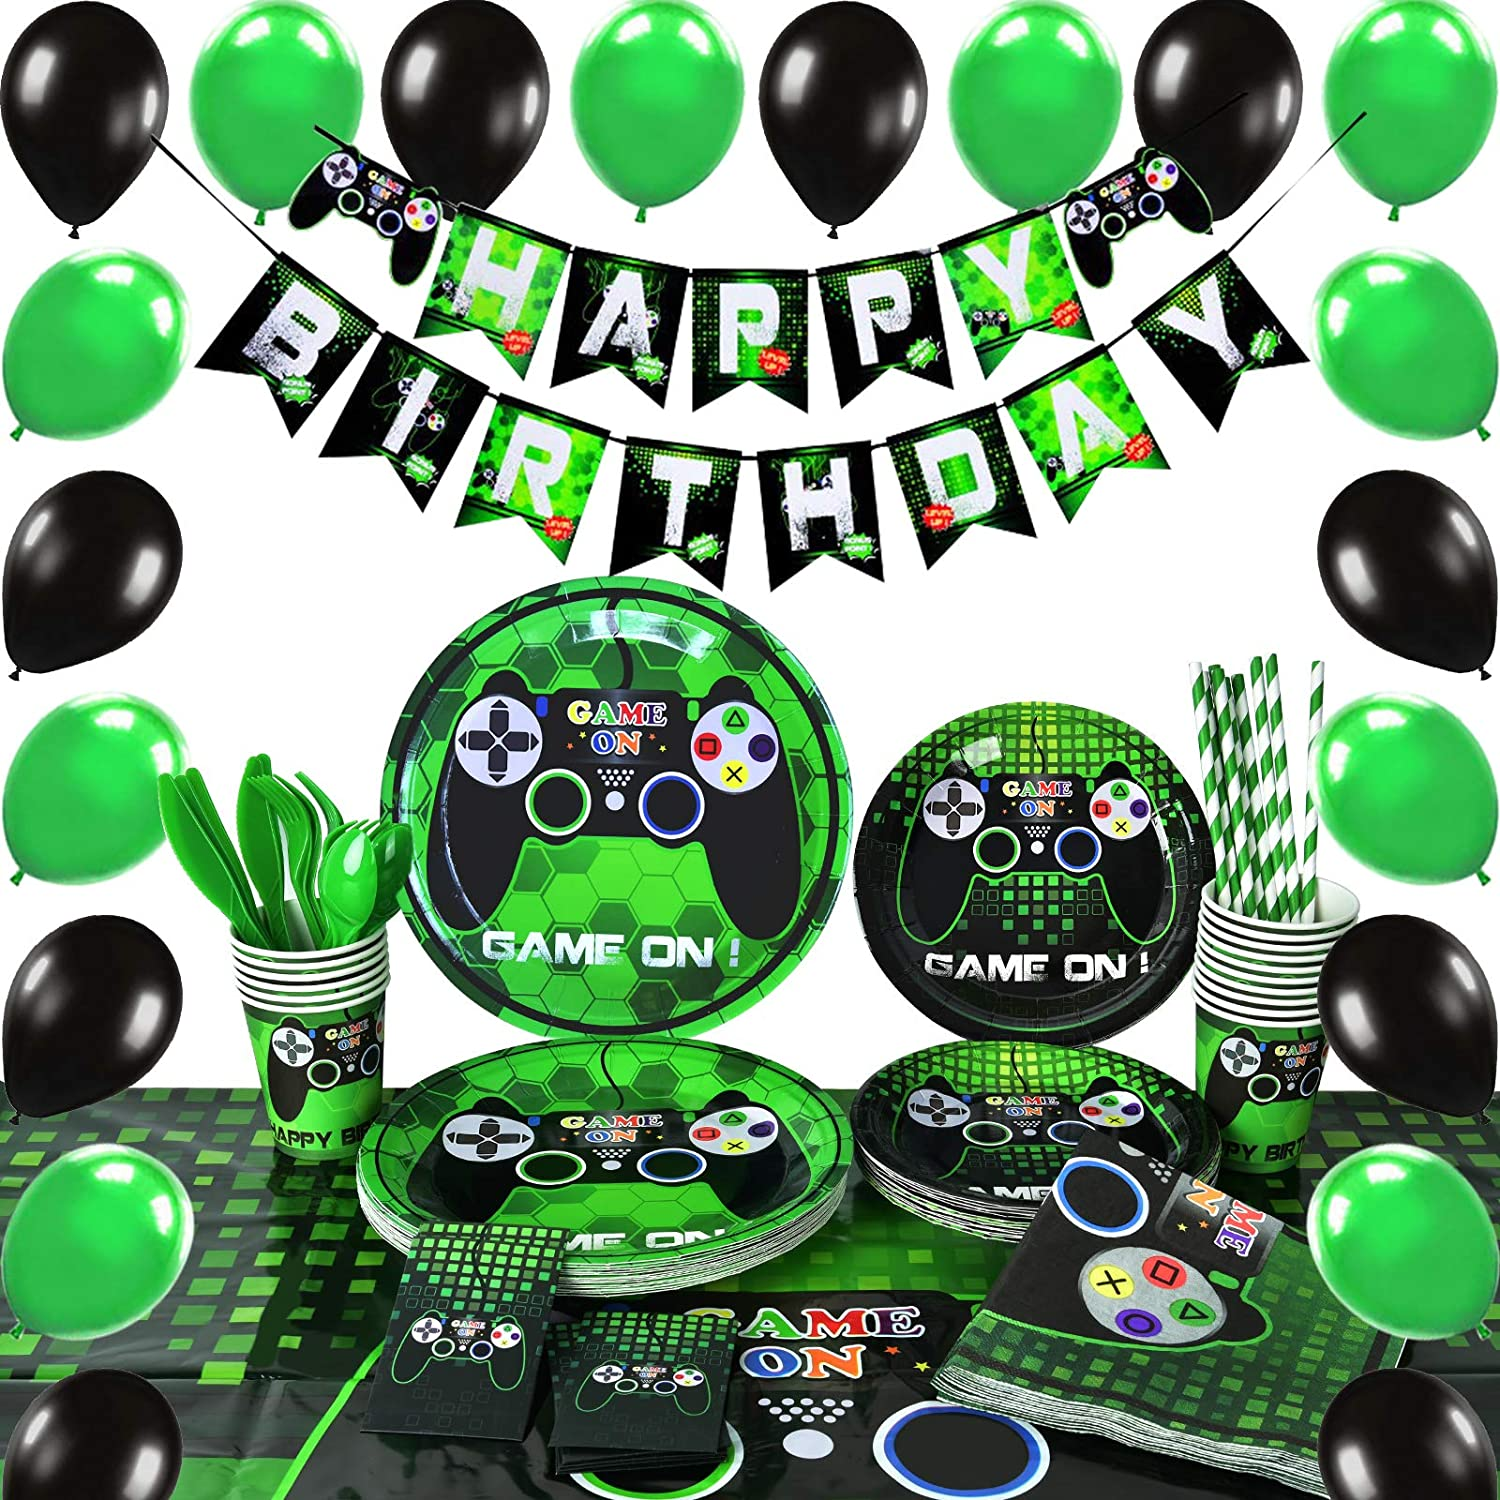 WERNNSAI Video Game Party Supplies   Gaming Party Decoration Boys Birthday  Party Cutlery Bag Table Cover Plates Cups Napkins Straws Utensils Birthday  ...